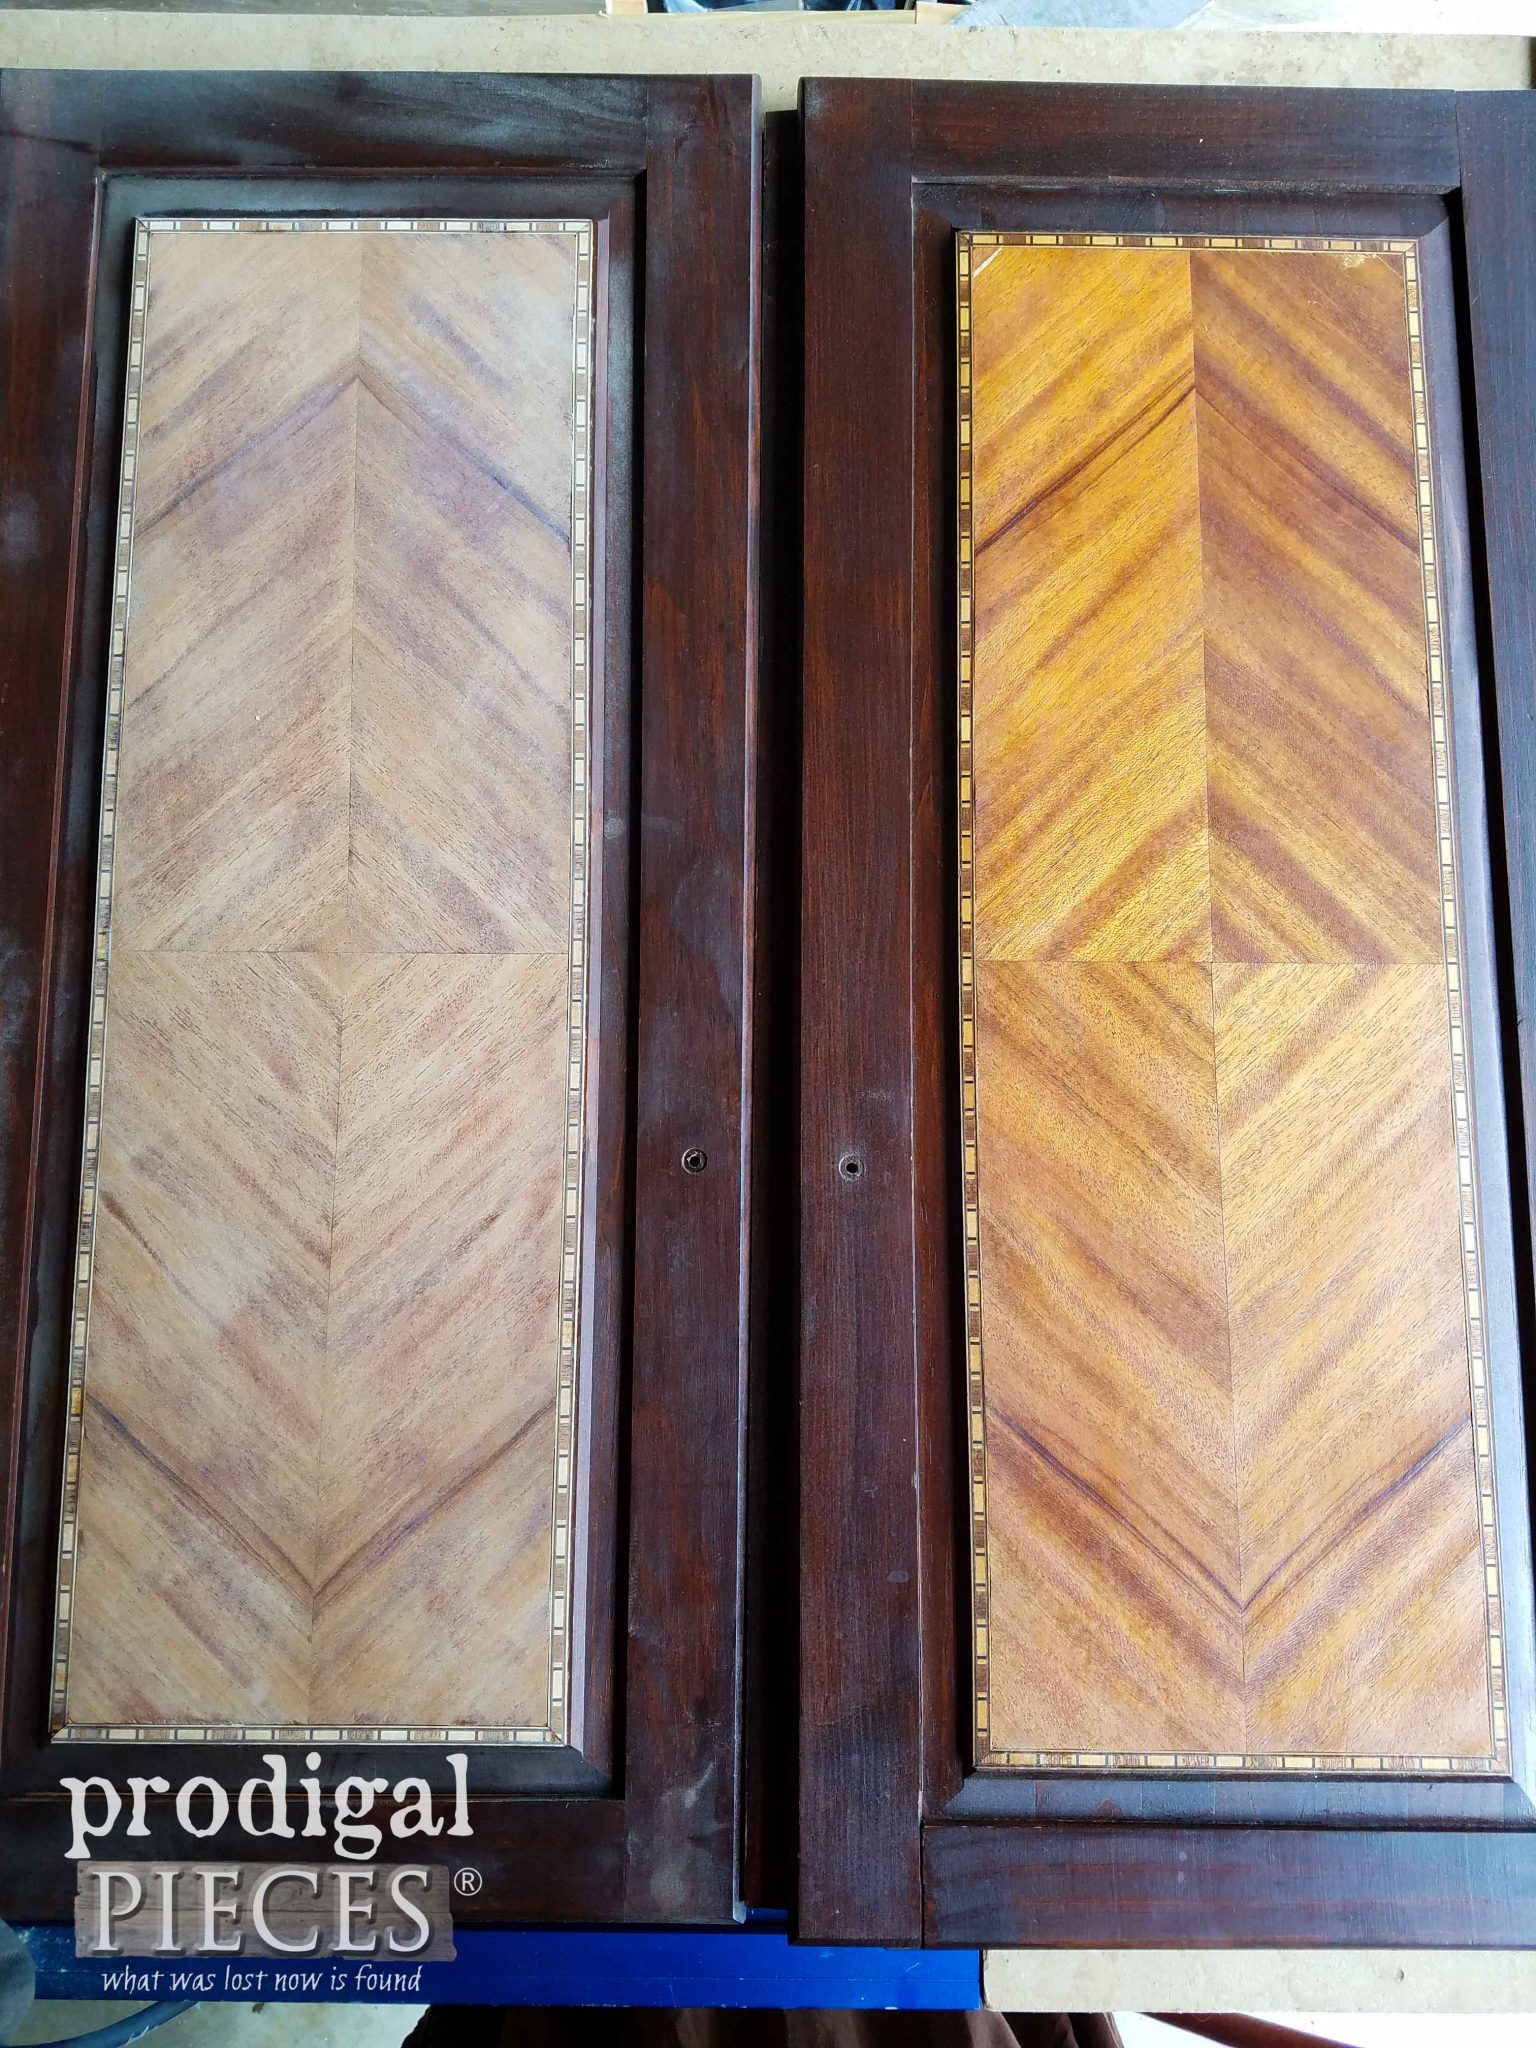 Sanded Cabinet Doors | prodigalpieces.com